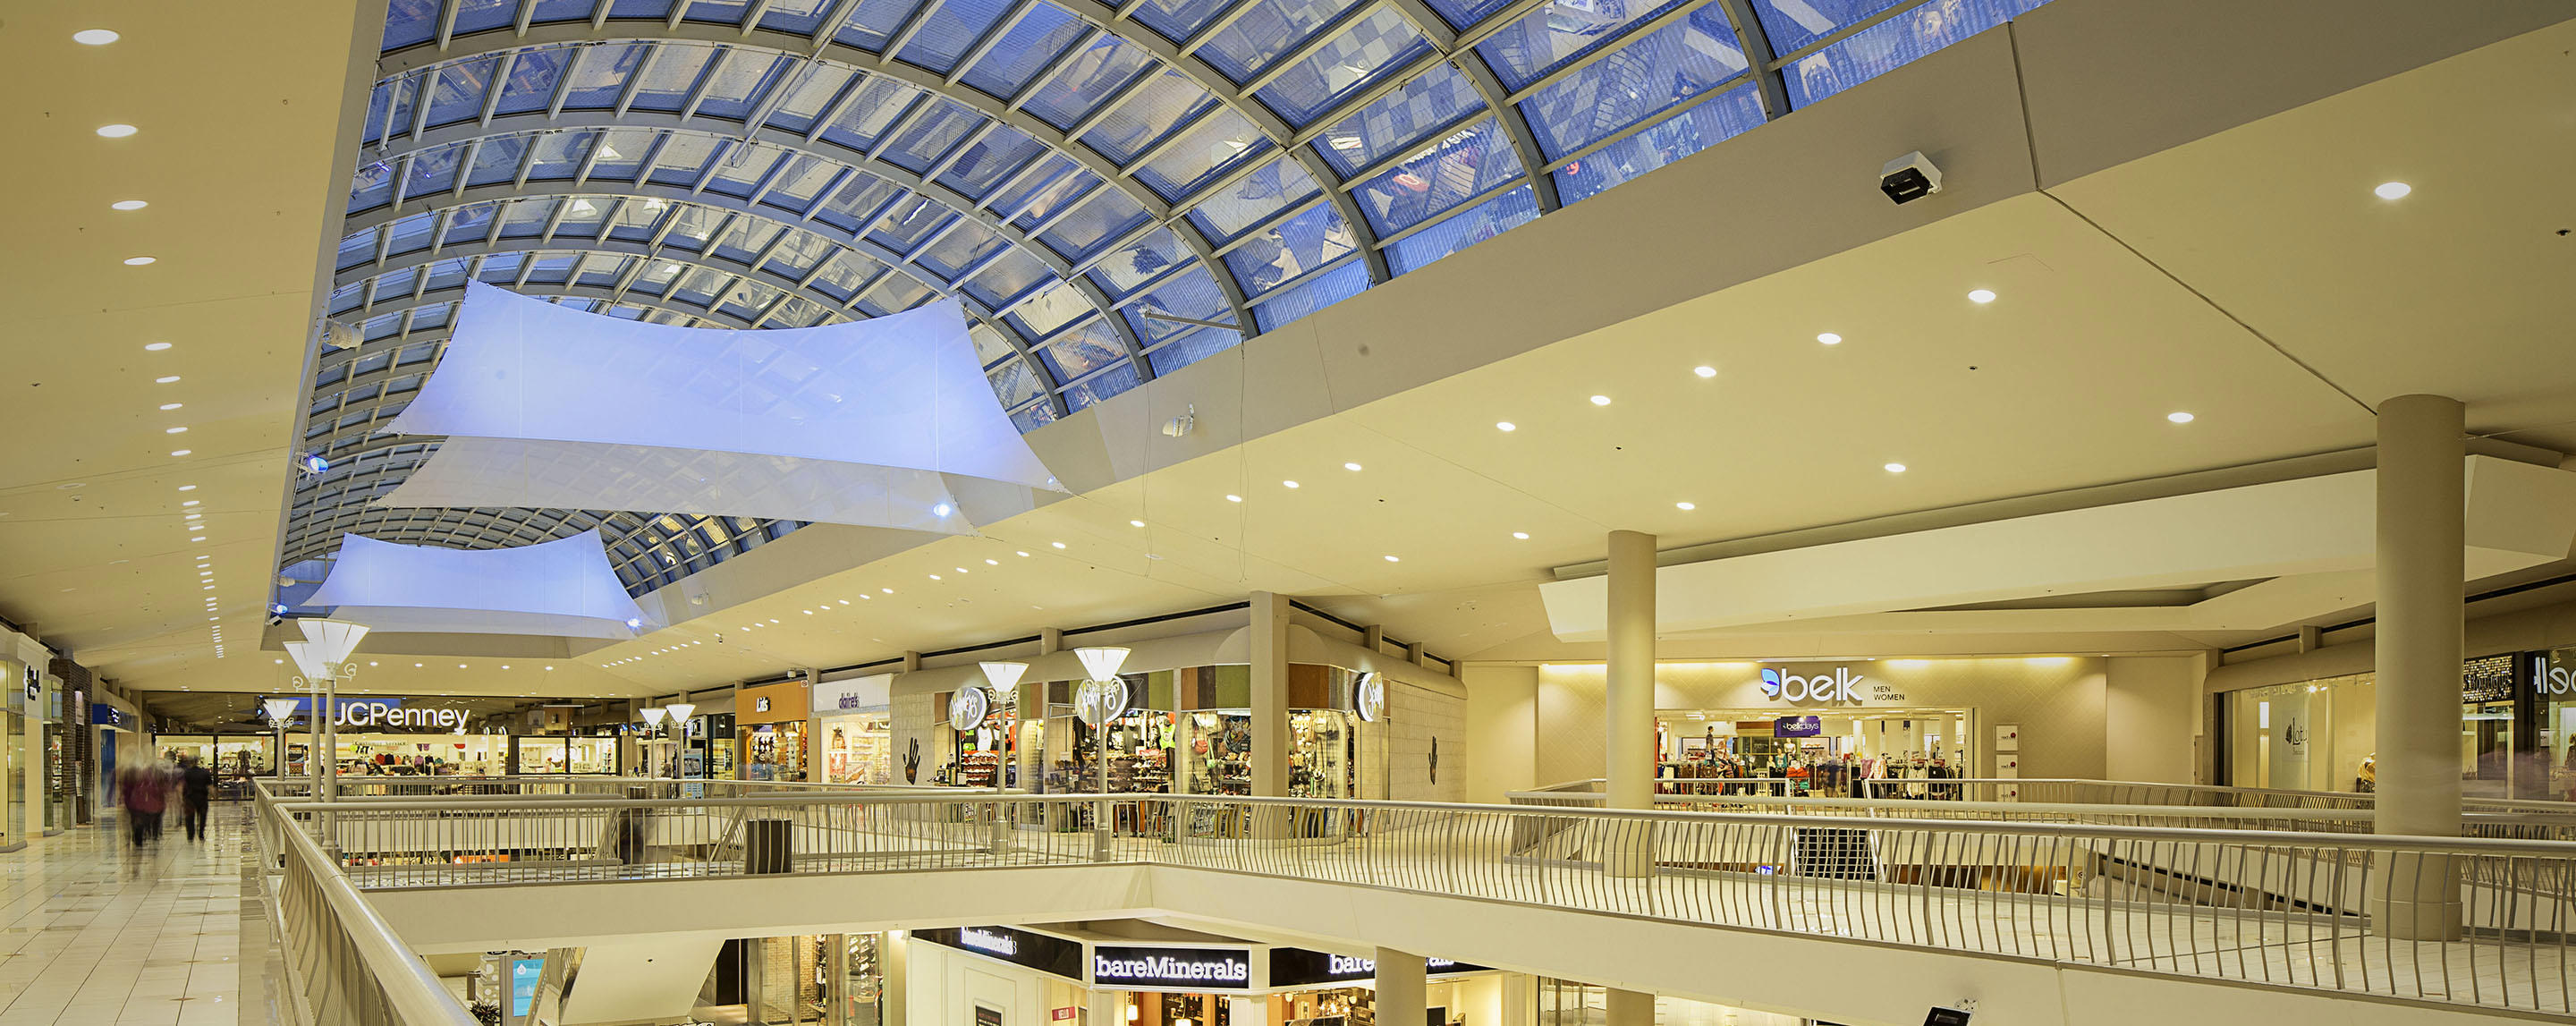 Find Shopping Centers and Malls local business listings in and near Birmingham, AL. Get Shopping Centers and Malls business addresses, phone numbers, driving directions, maps, reviews and more.